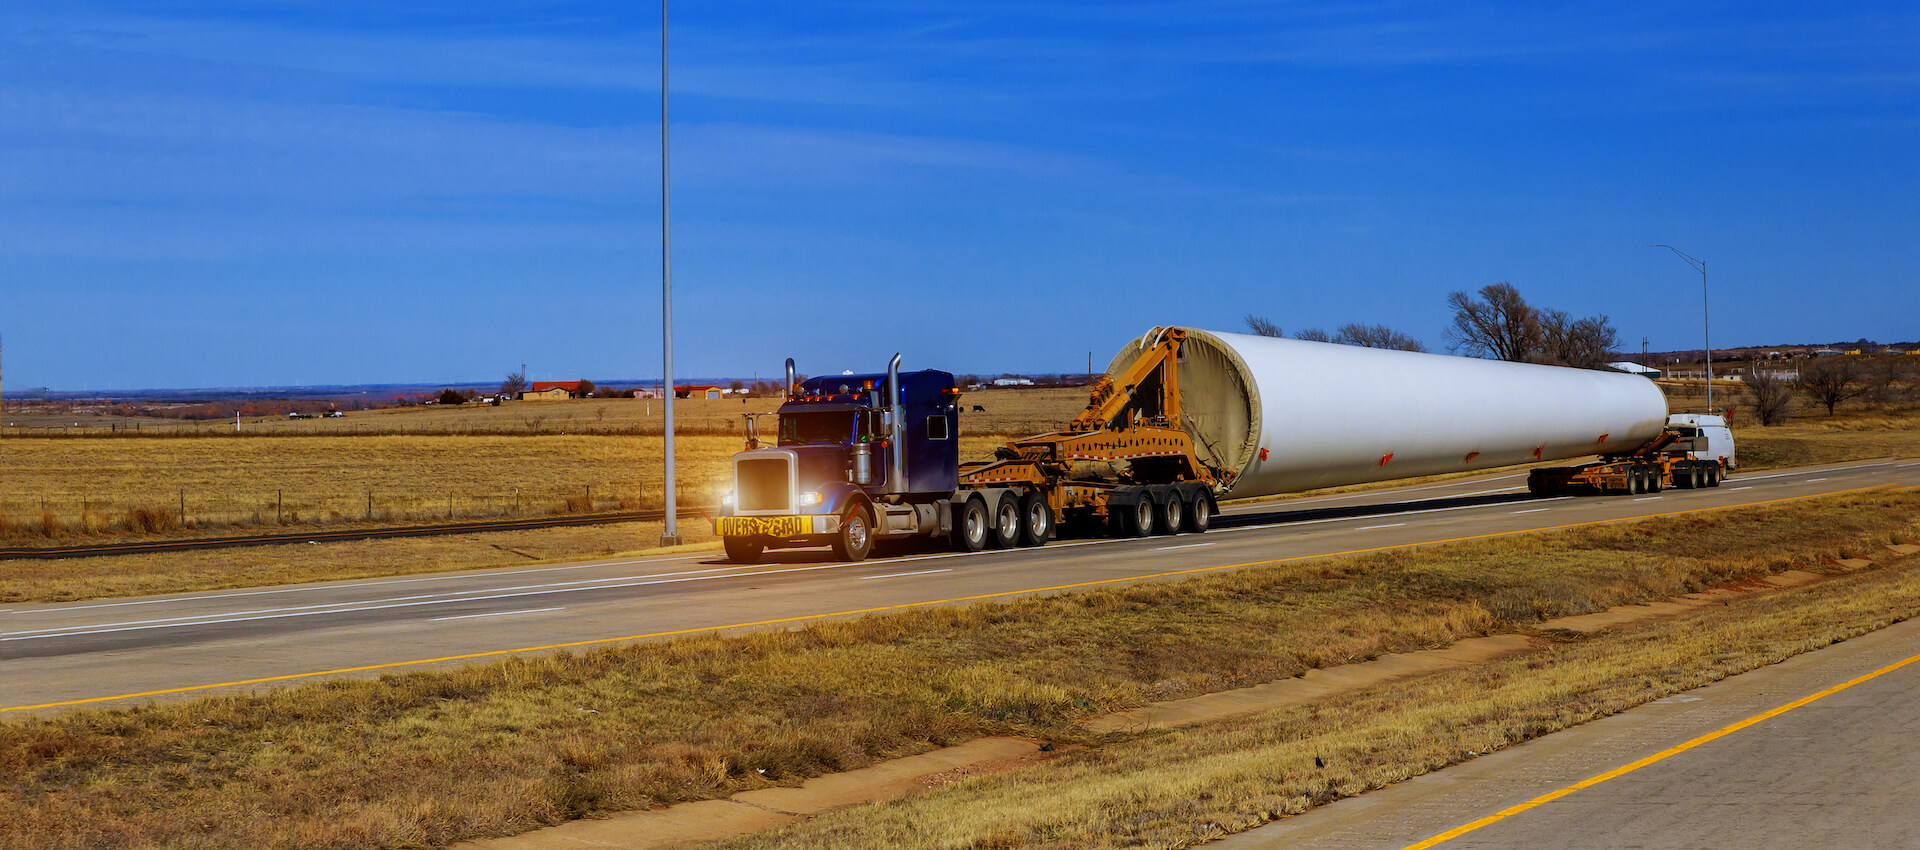 Heavy haul truck transporting wind turbine on highway